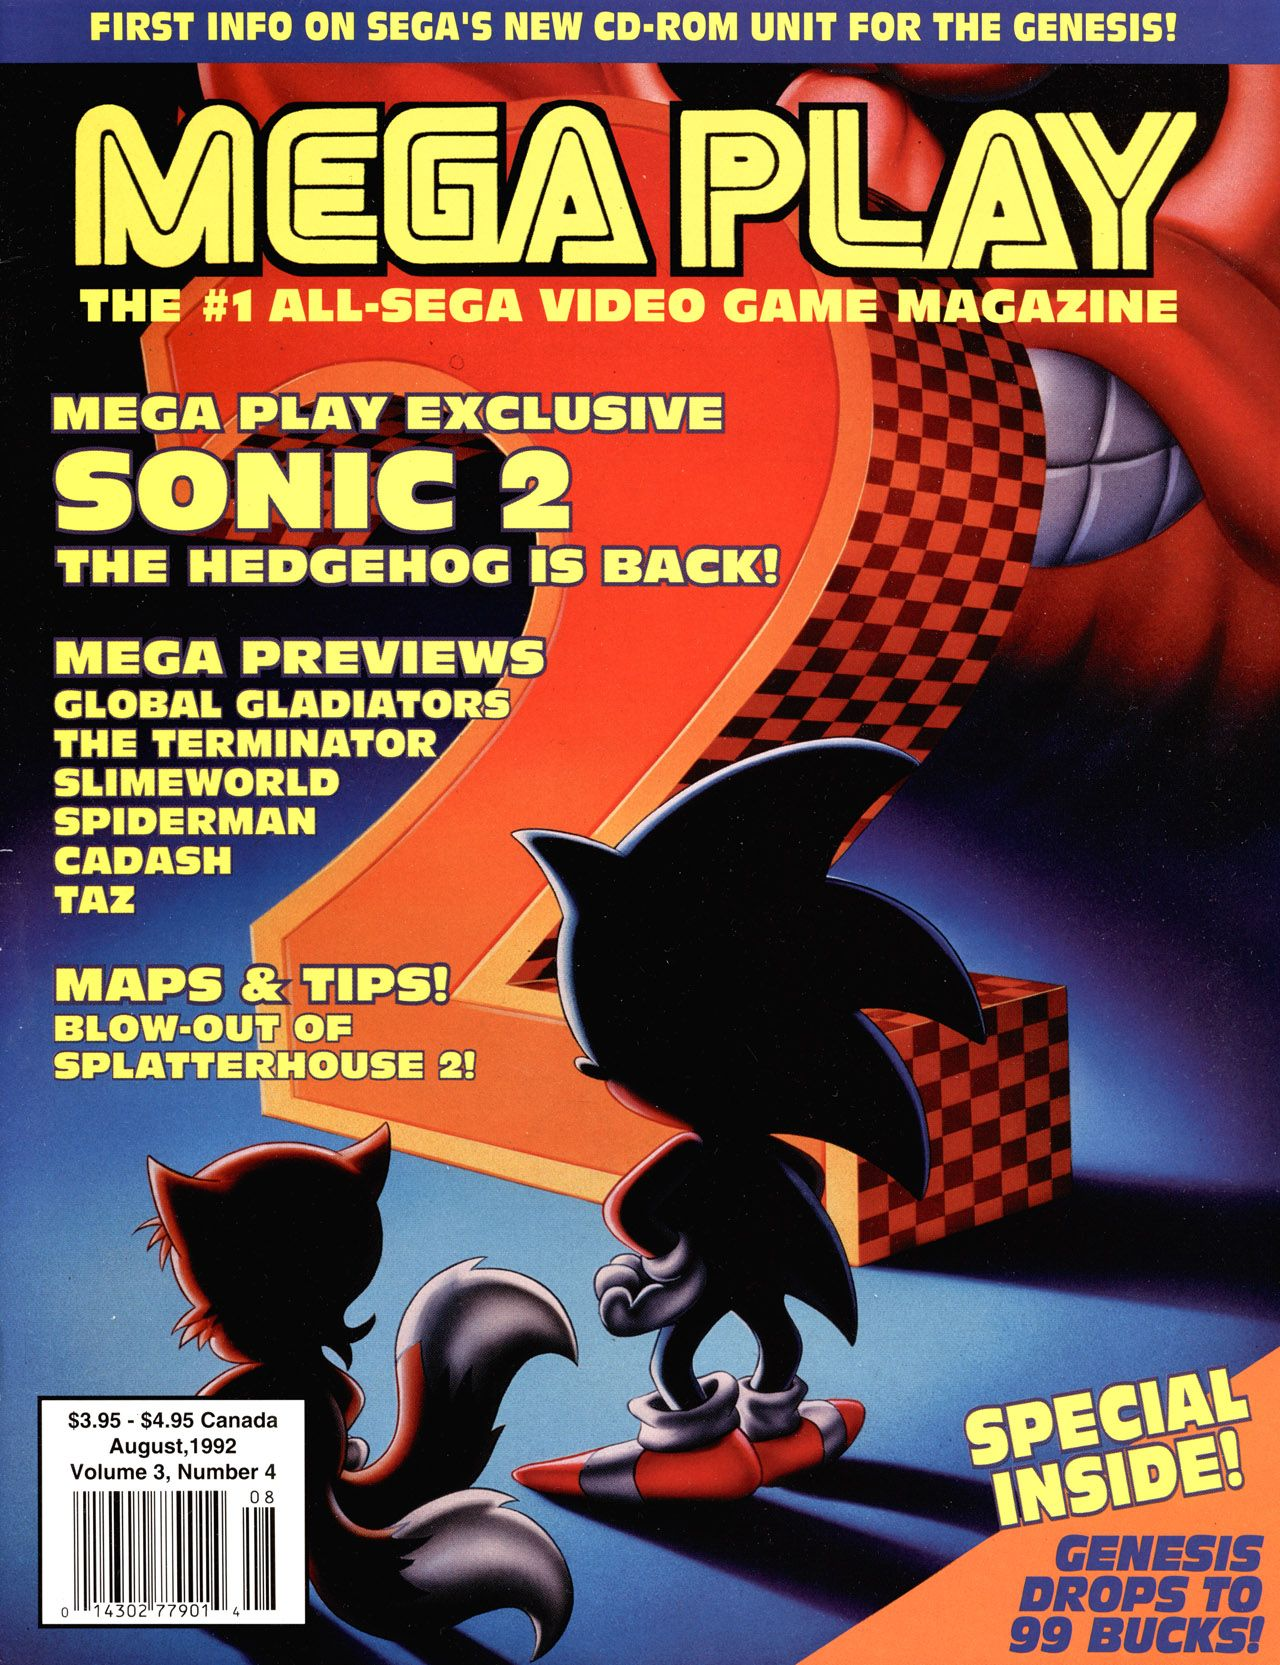 All caps magazine cover that uses the special font of SEGA